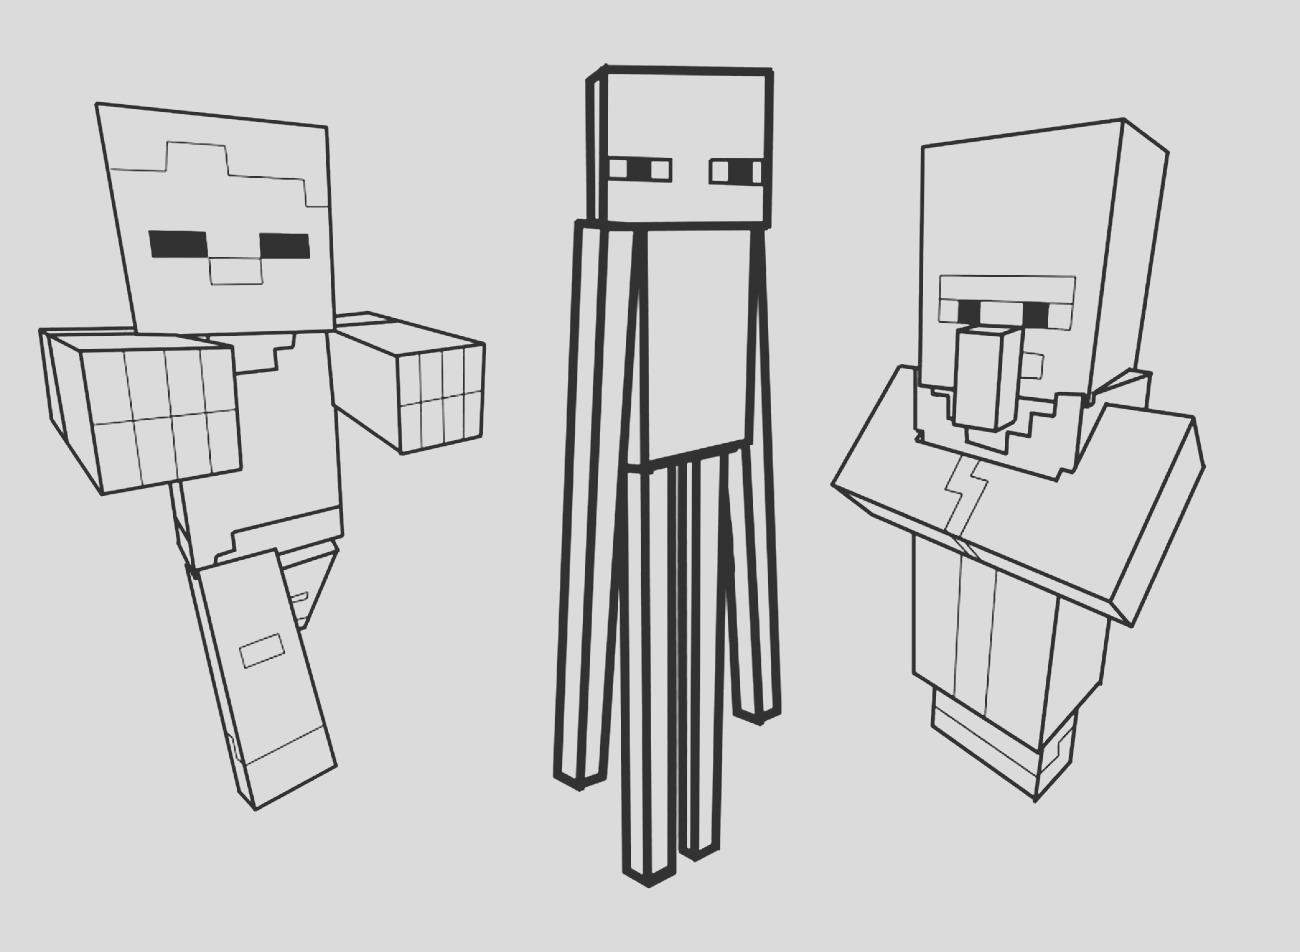 image=minecraft Coloring for kids minecraft 1